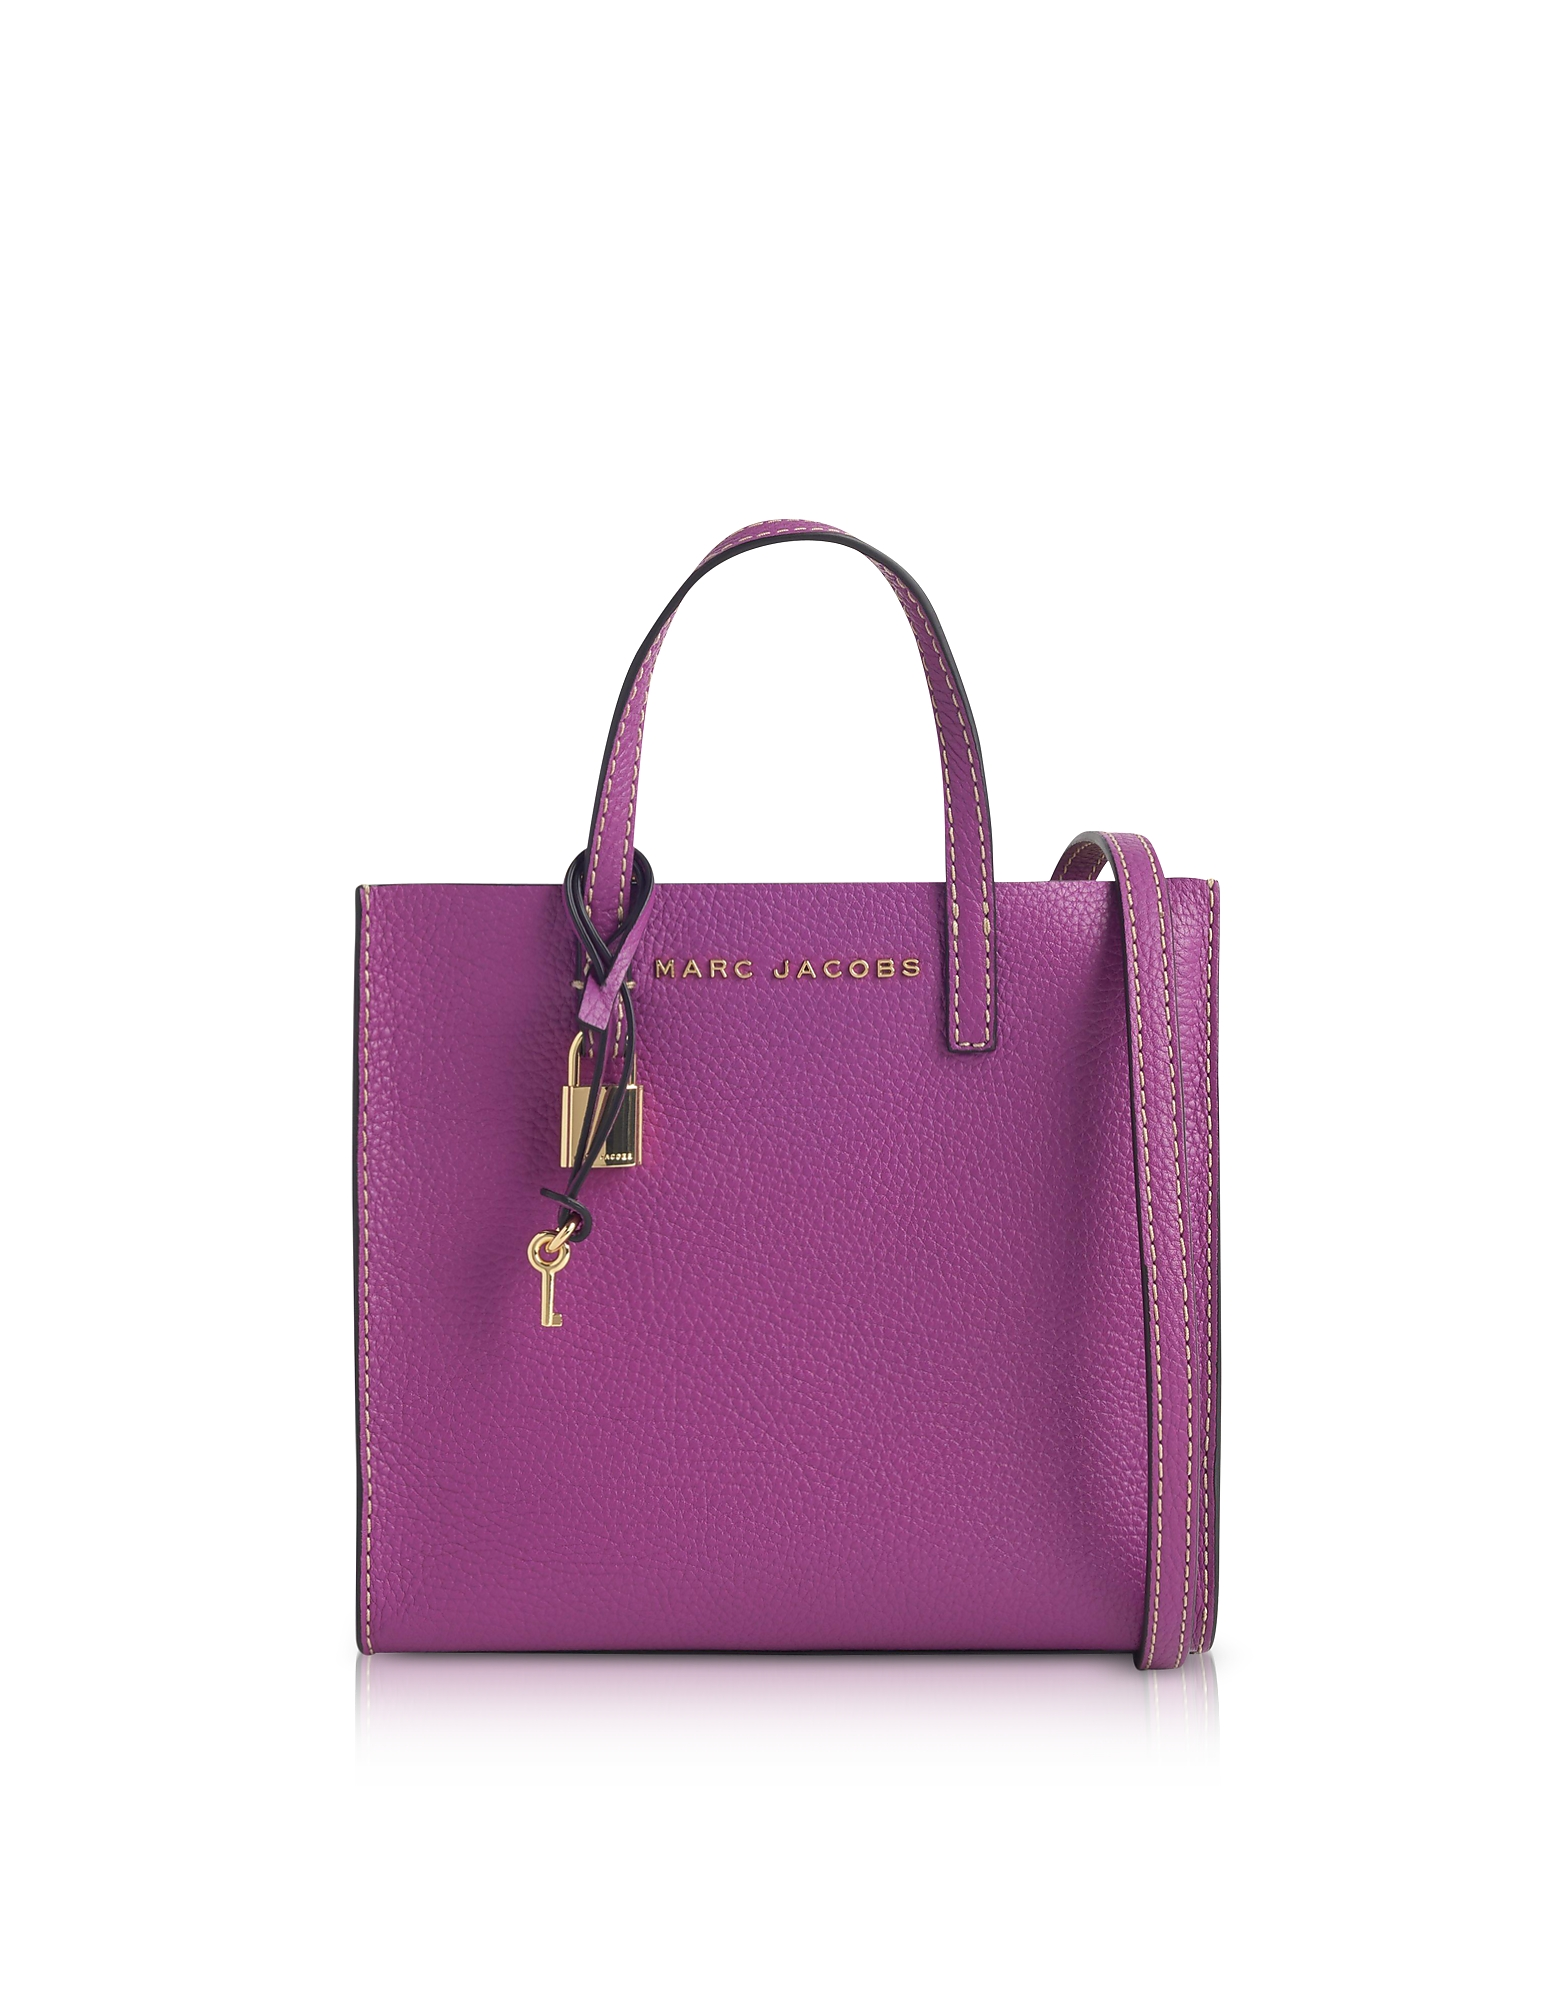 Marc Jacobs Handbags, The Grind Mini Leather Tote Bag